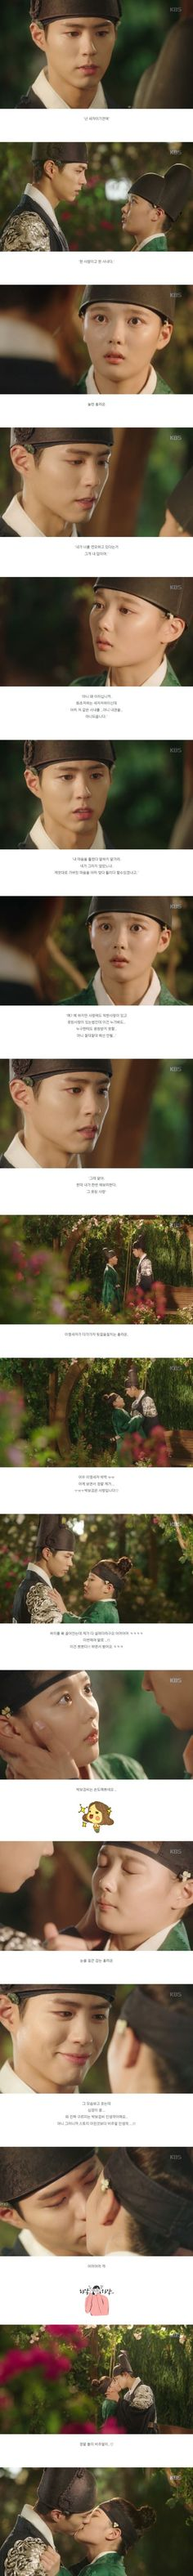 Added episode 7 captures for the Korean drama 'Moonlight Drawn by Clouds'.